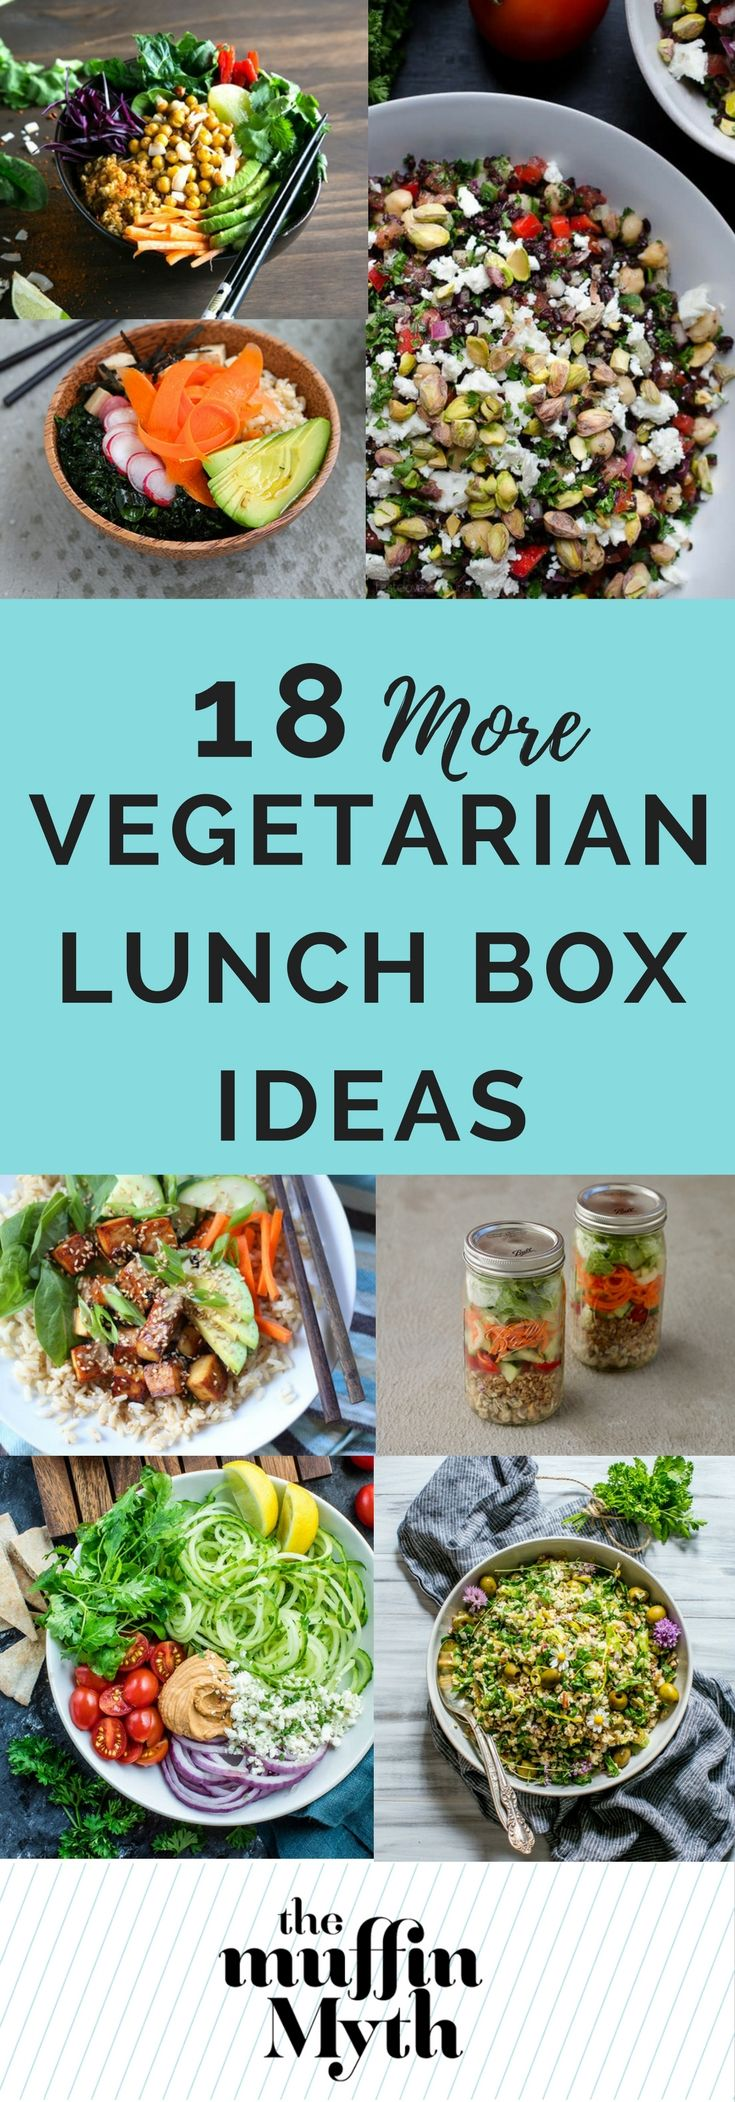 18 Vegetarian Lunch Box Ideas: healthy and delicious packable salads and bowls for your vegetarian lunch box.